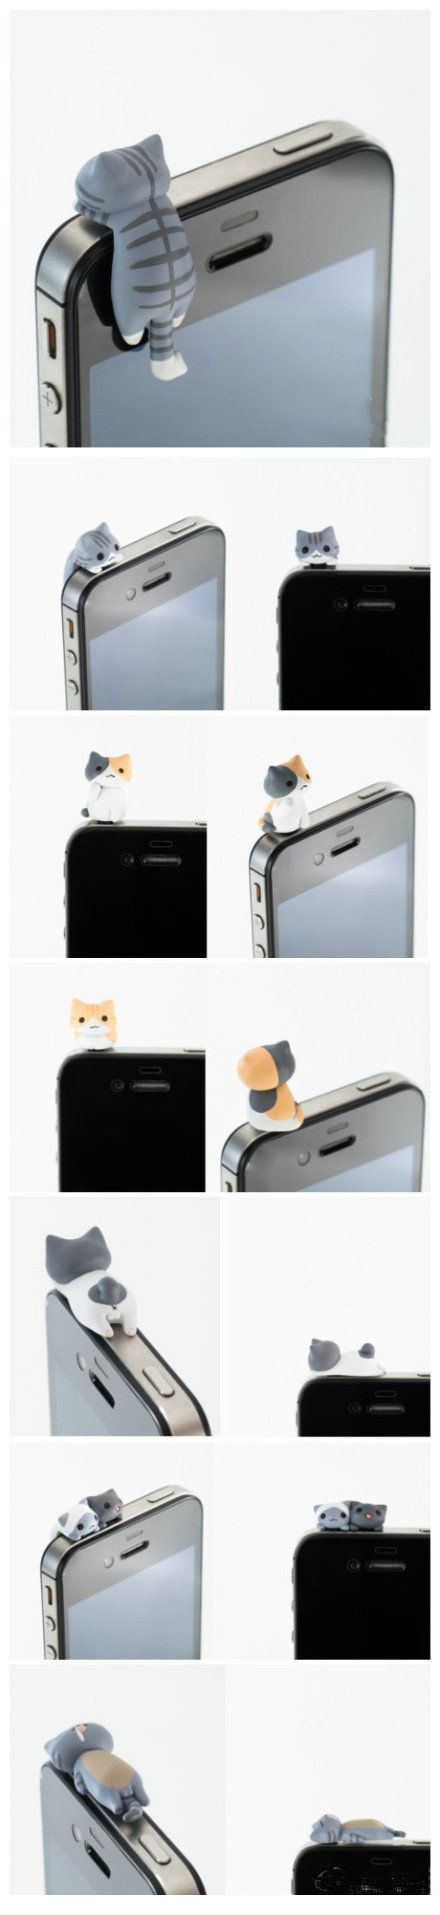 Zu nichts nutze, aber so richtig niedlich!: Dust Plug, Phone Cases, Jack O'Connell, Crazy Cat, Cute Iphone Cat Accessories, Iphone Accessories, Cat Lady